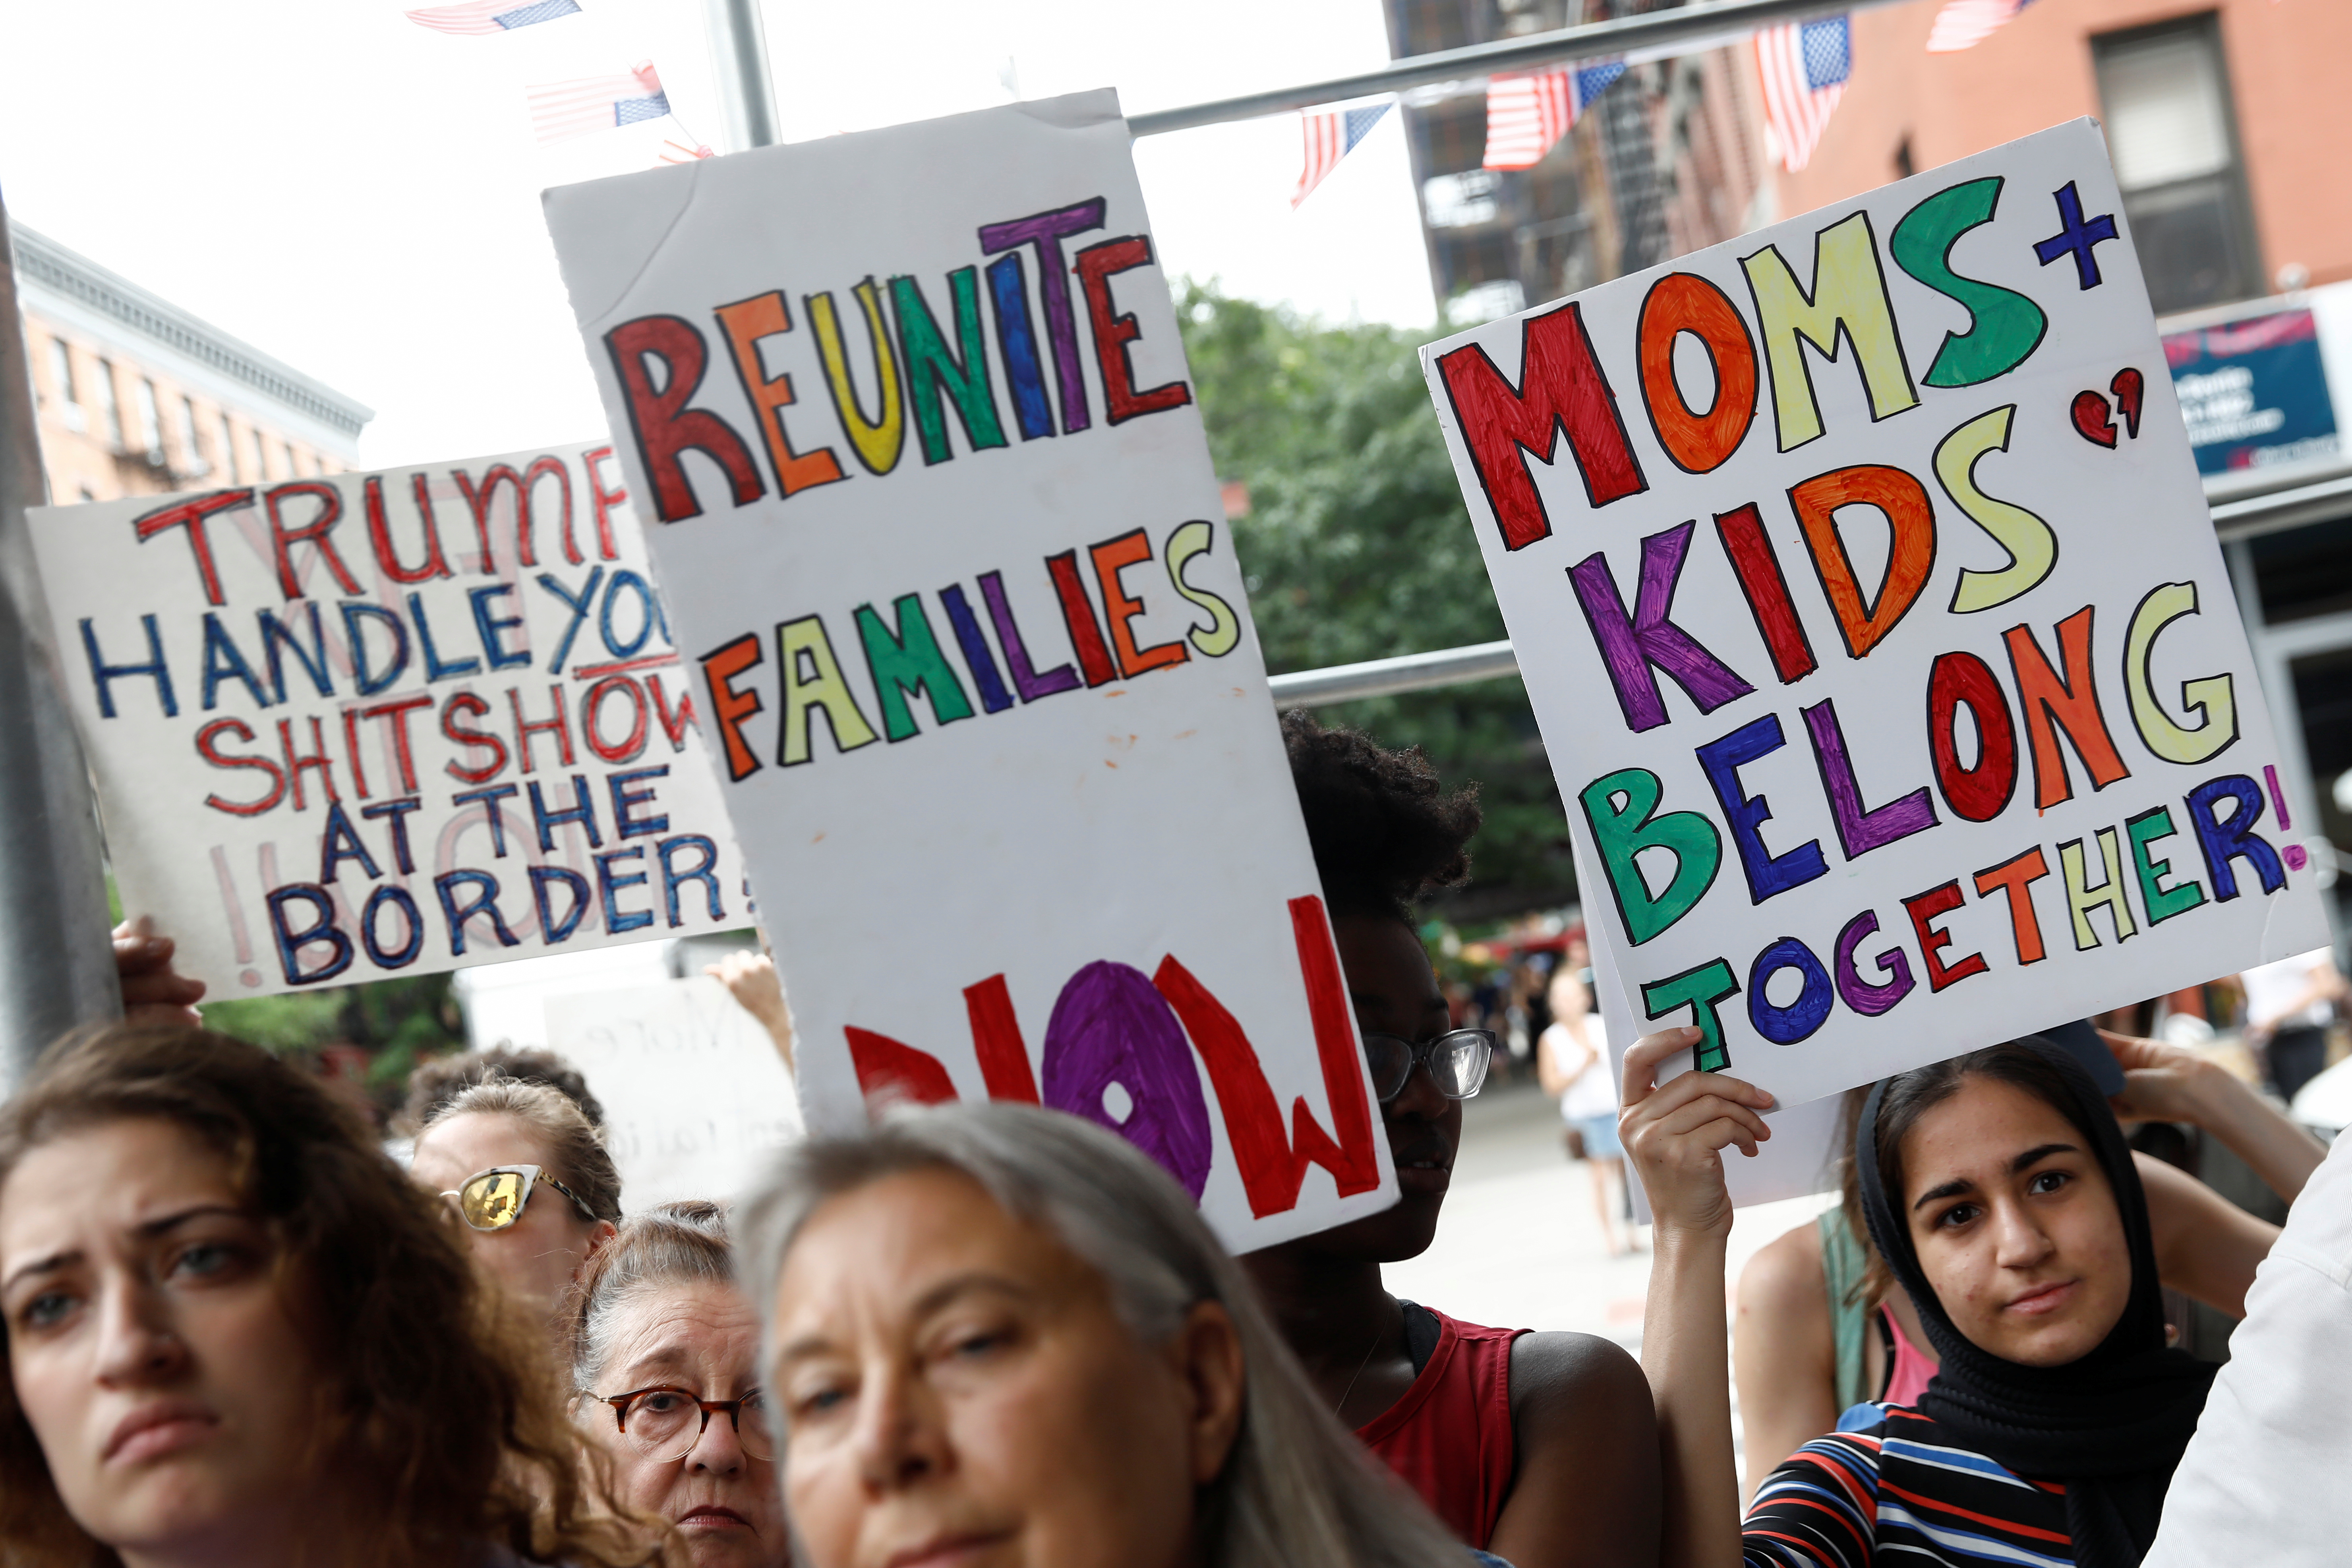 Demonstrators hold signs during a 'Close the Camps' rally to demand the closure of inhumane immigrant detention centers outside the Middle Collegiate Church in New York, U.S., July 2, 2019.  REUTERS/Shannon Stapleton